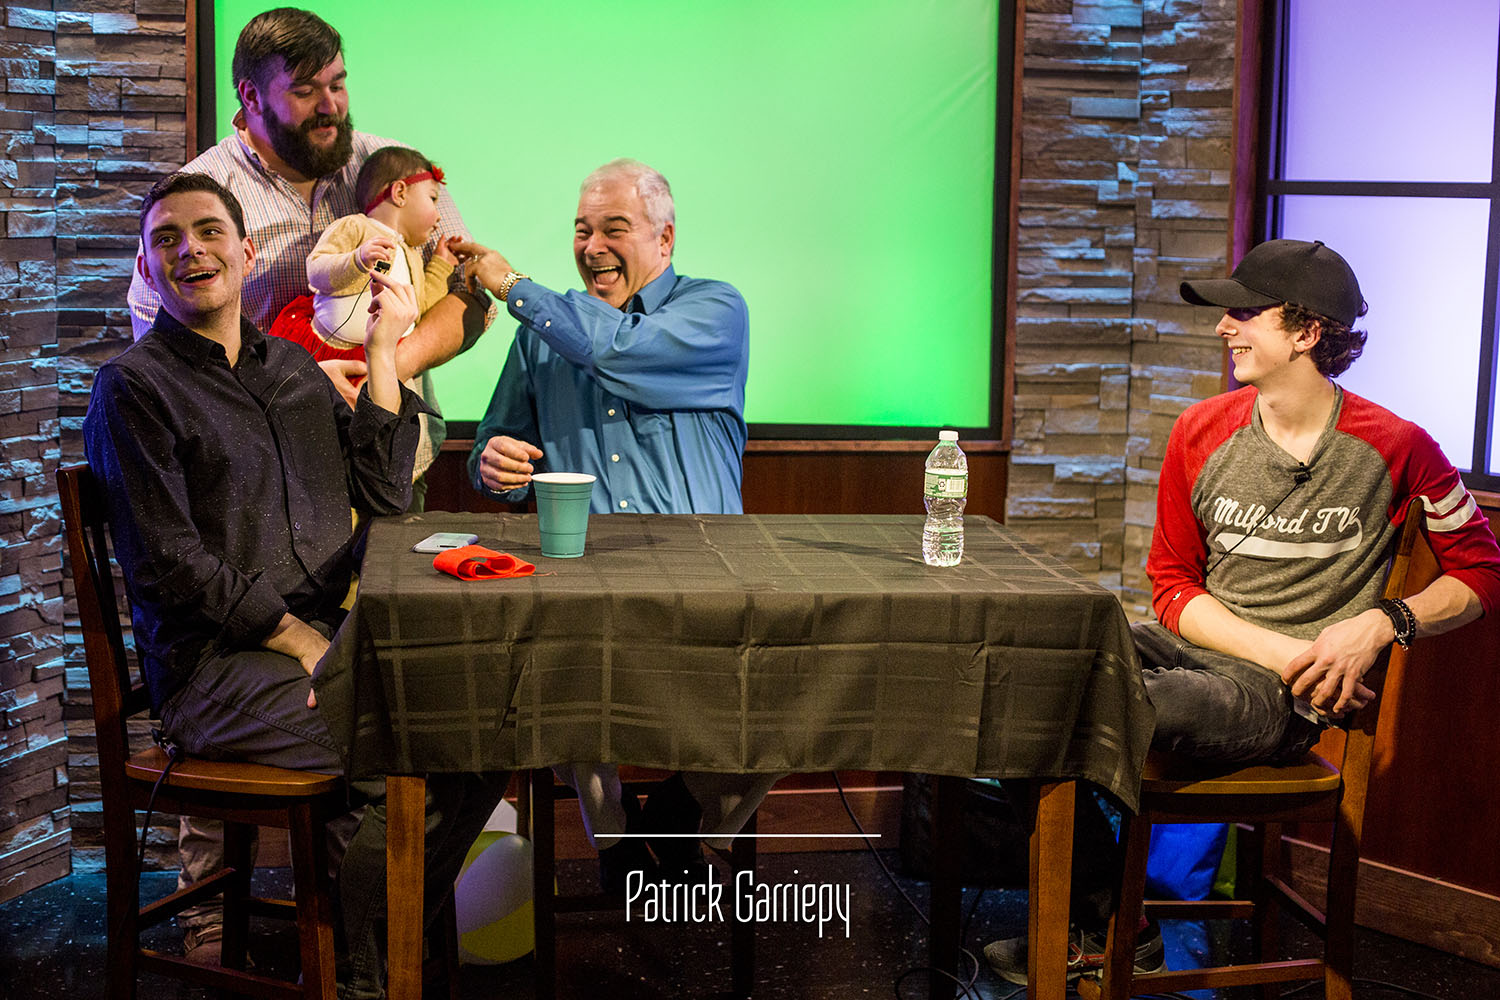 """Talk Show"" Host RJ Sheedy, ""That Milford Show"" Host Al Correia and volunteer Malcolm Zale share an on-air interaction with Milford TV Producer Mike Spurling and his daughter."